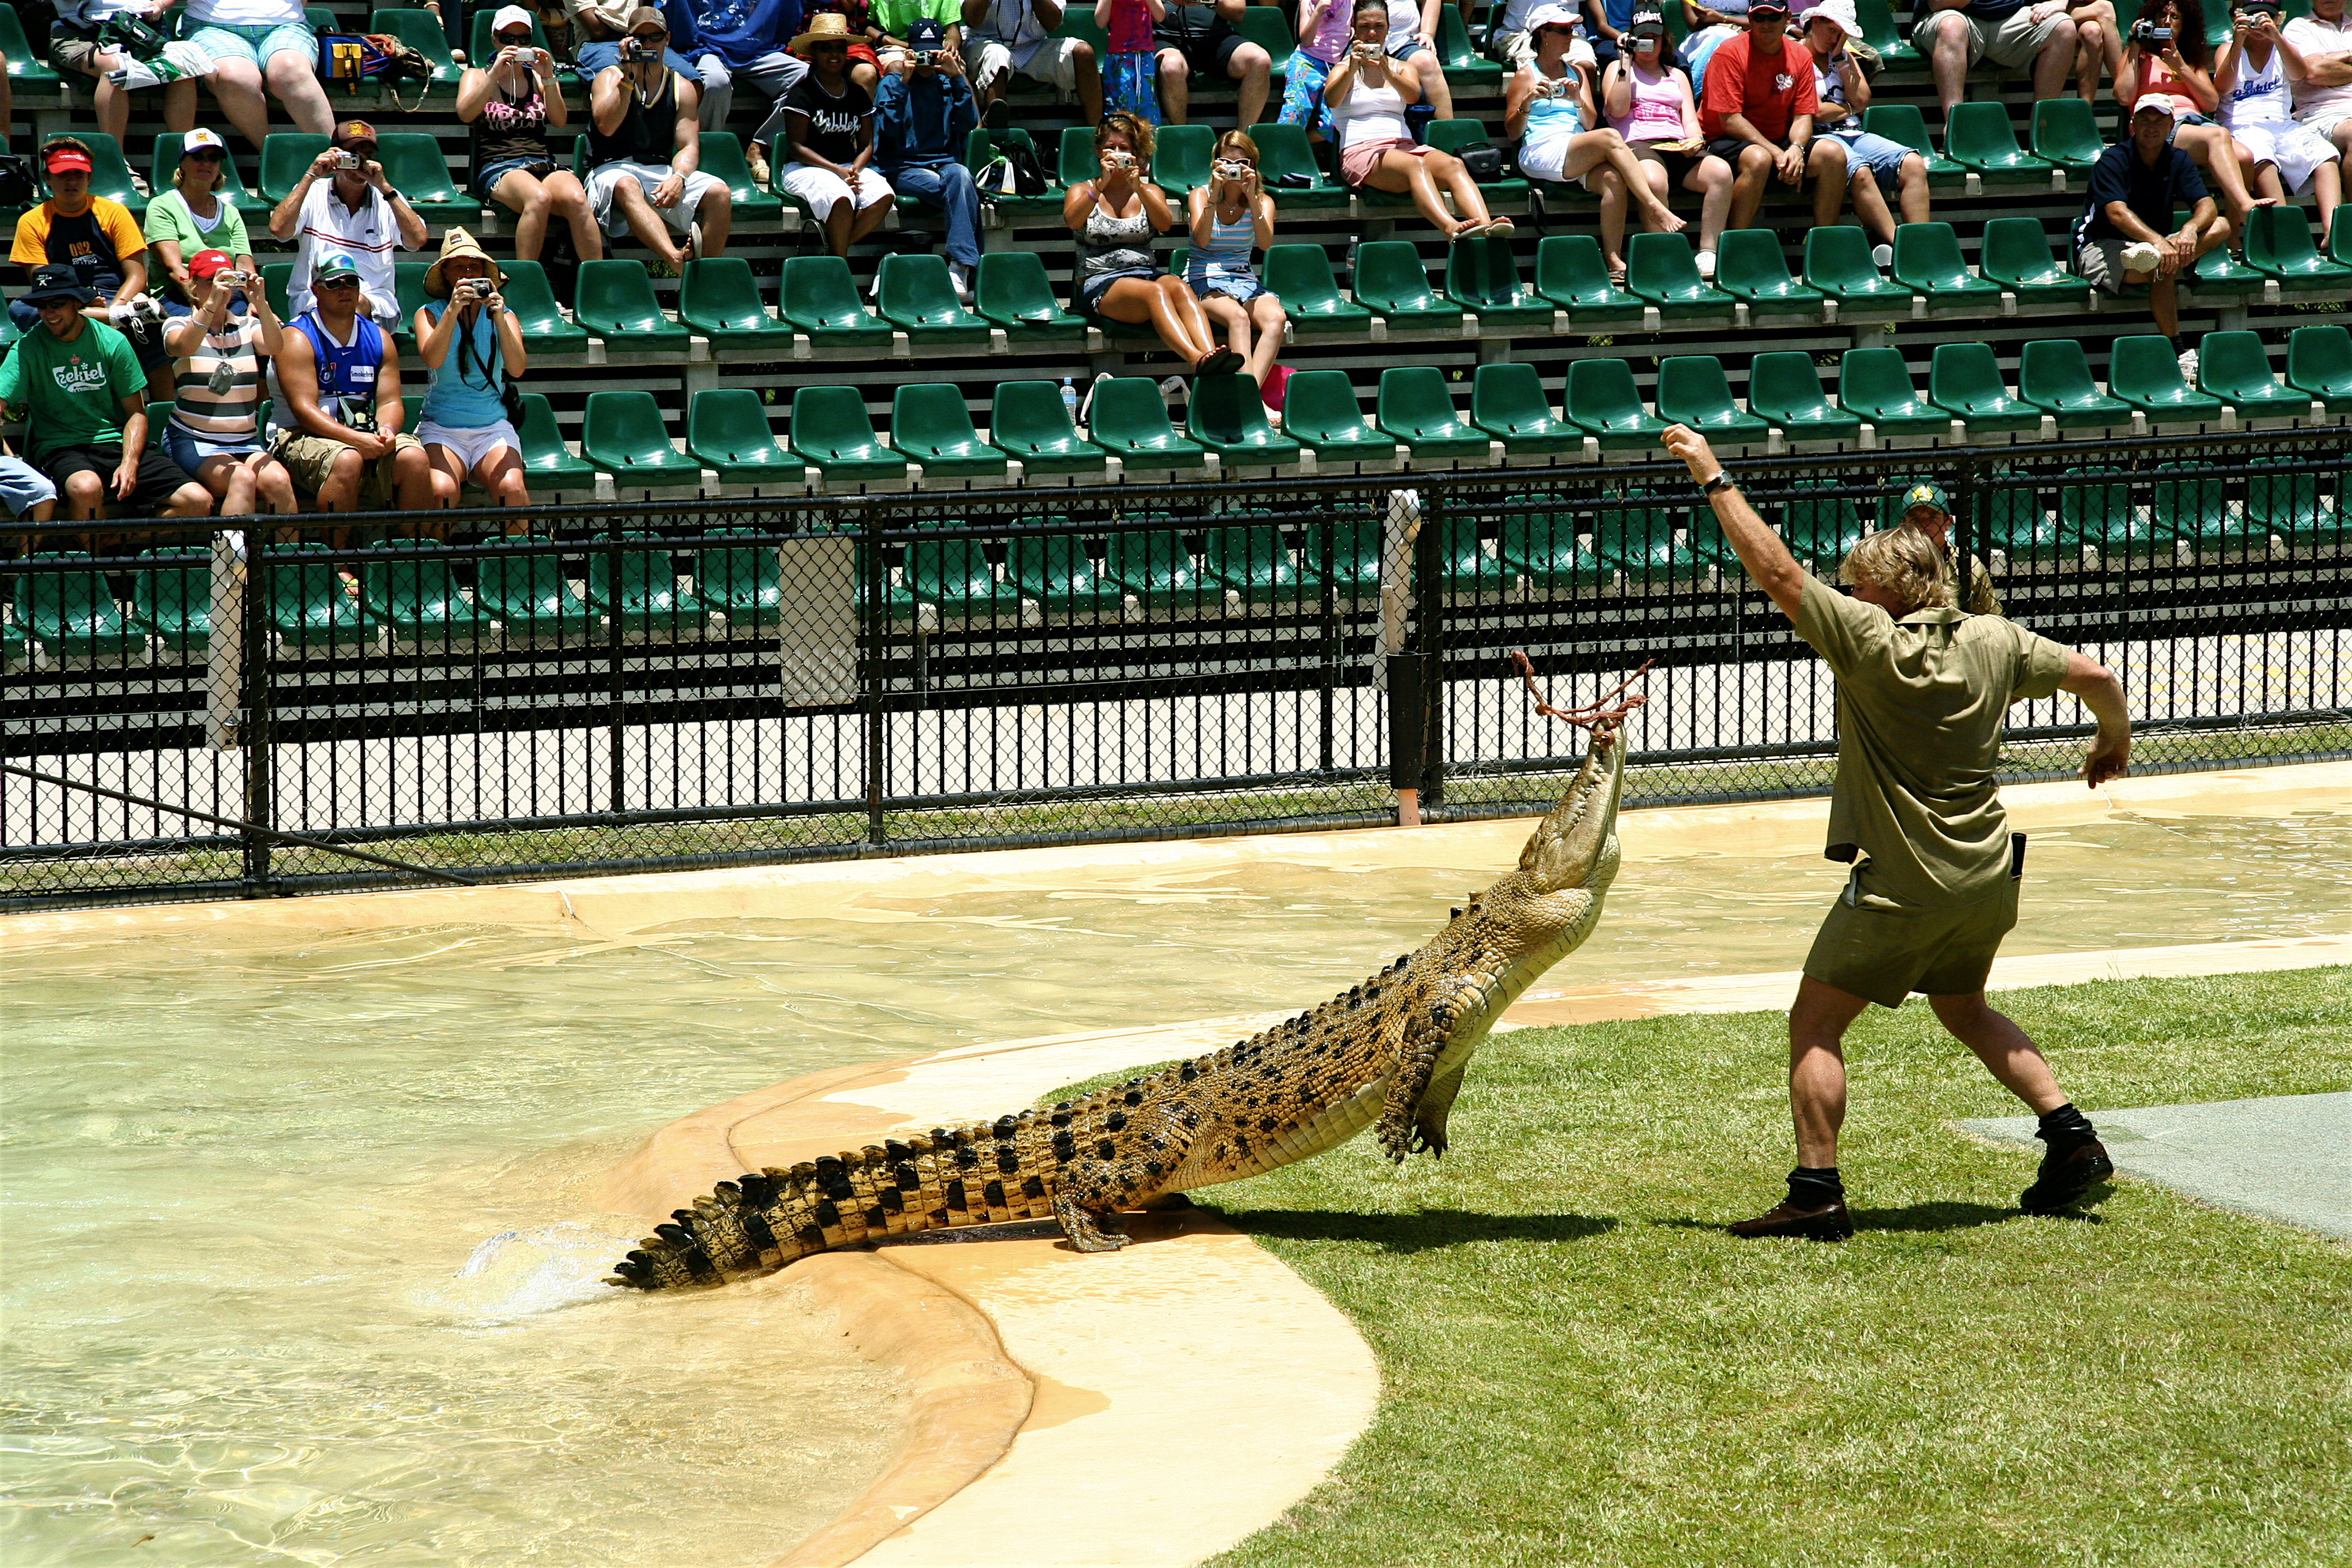 Steve Irwin at his Australia Zoo